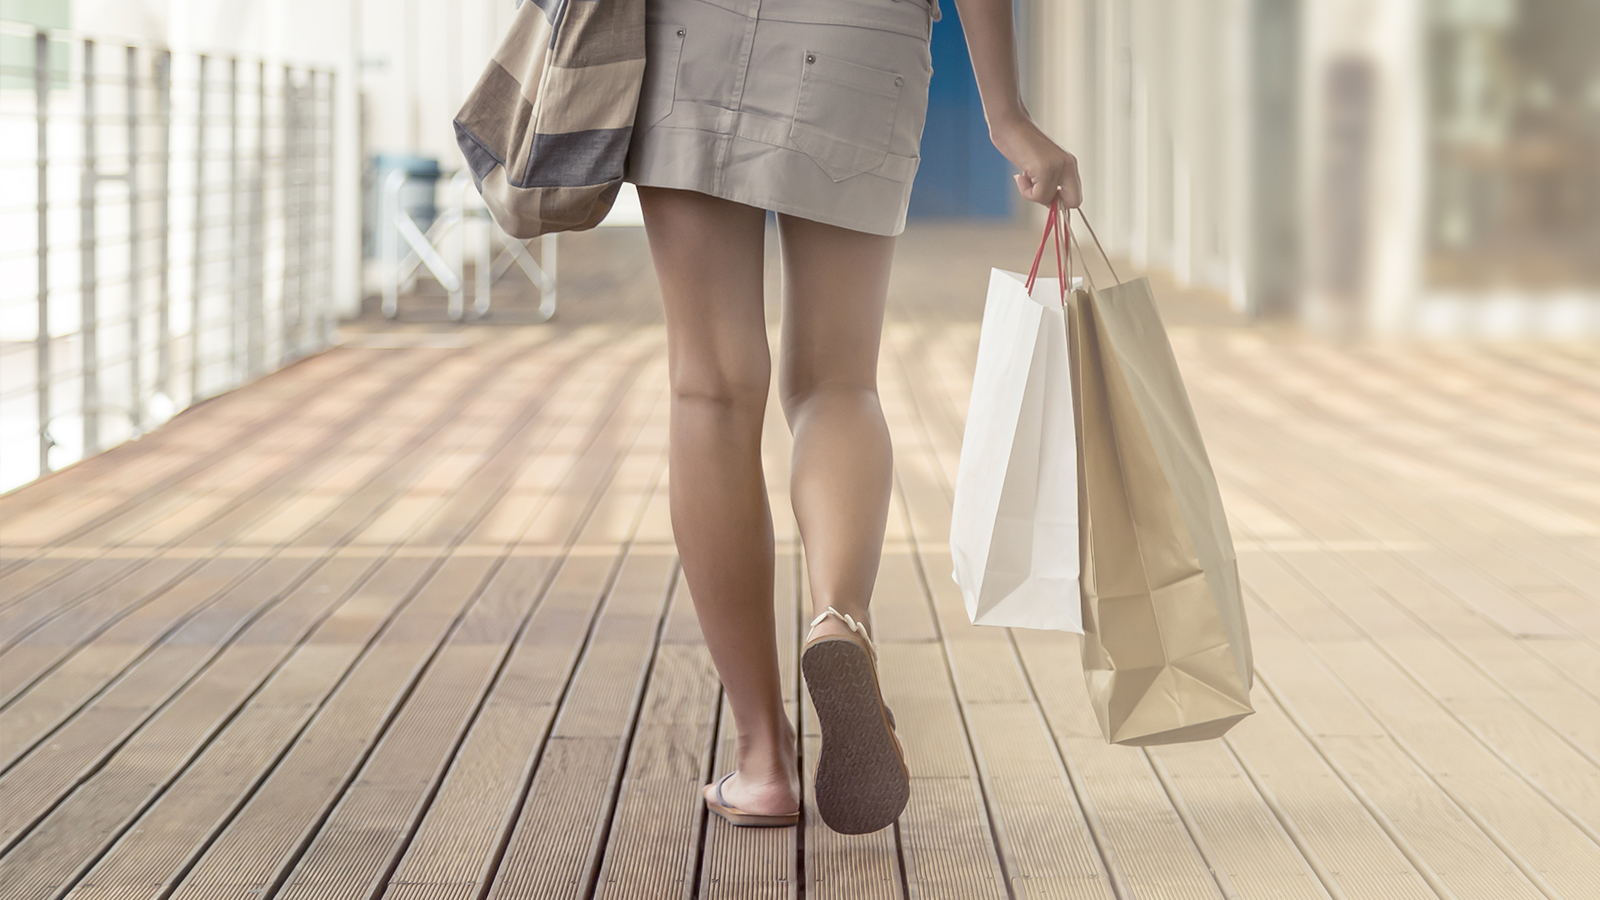 shopping-woman-walking-1600x900